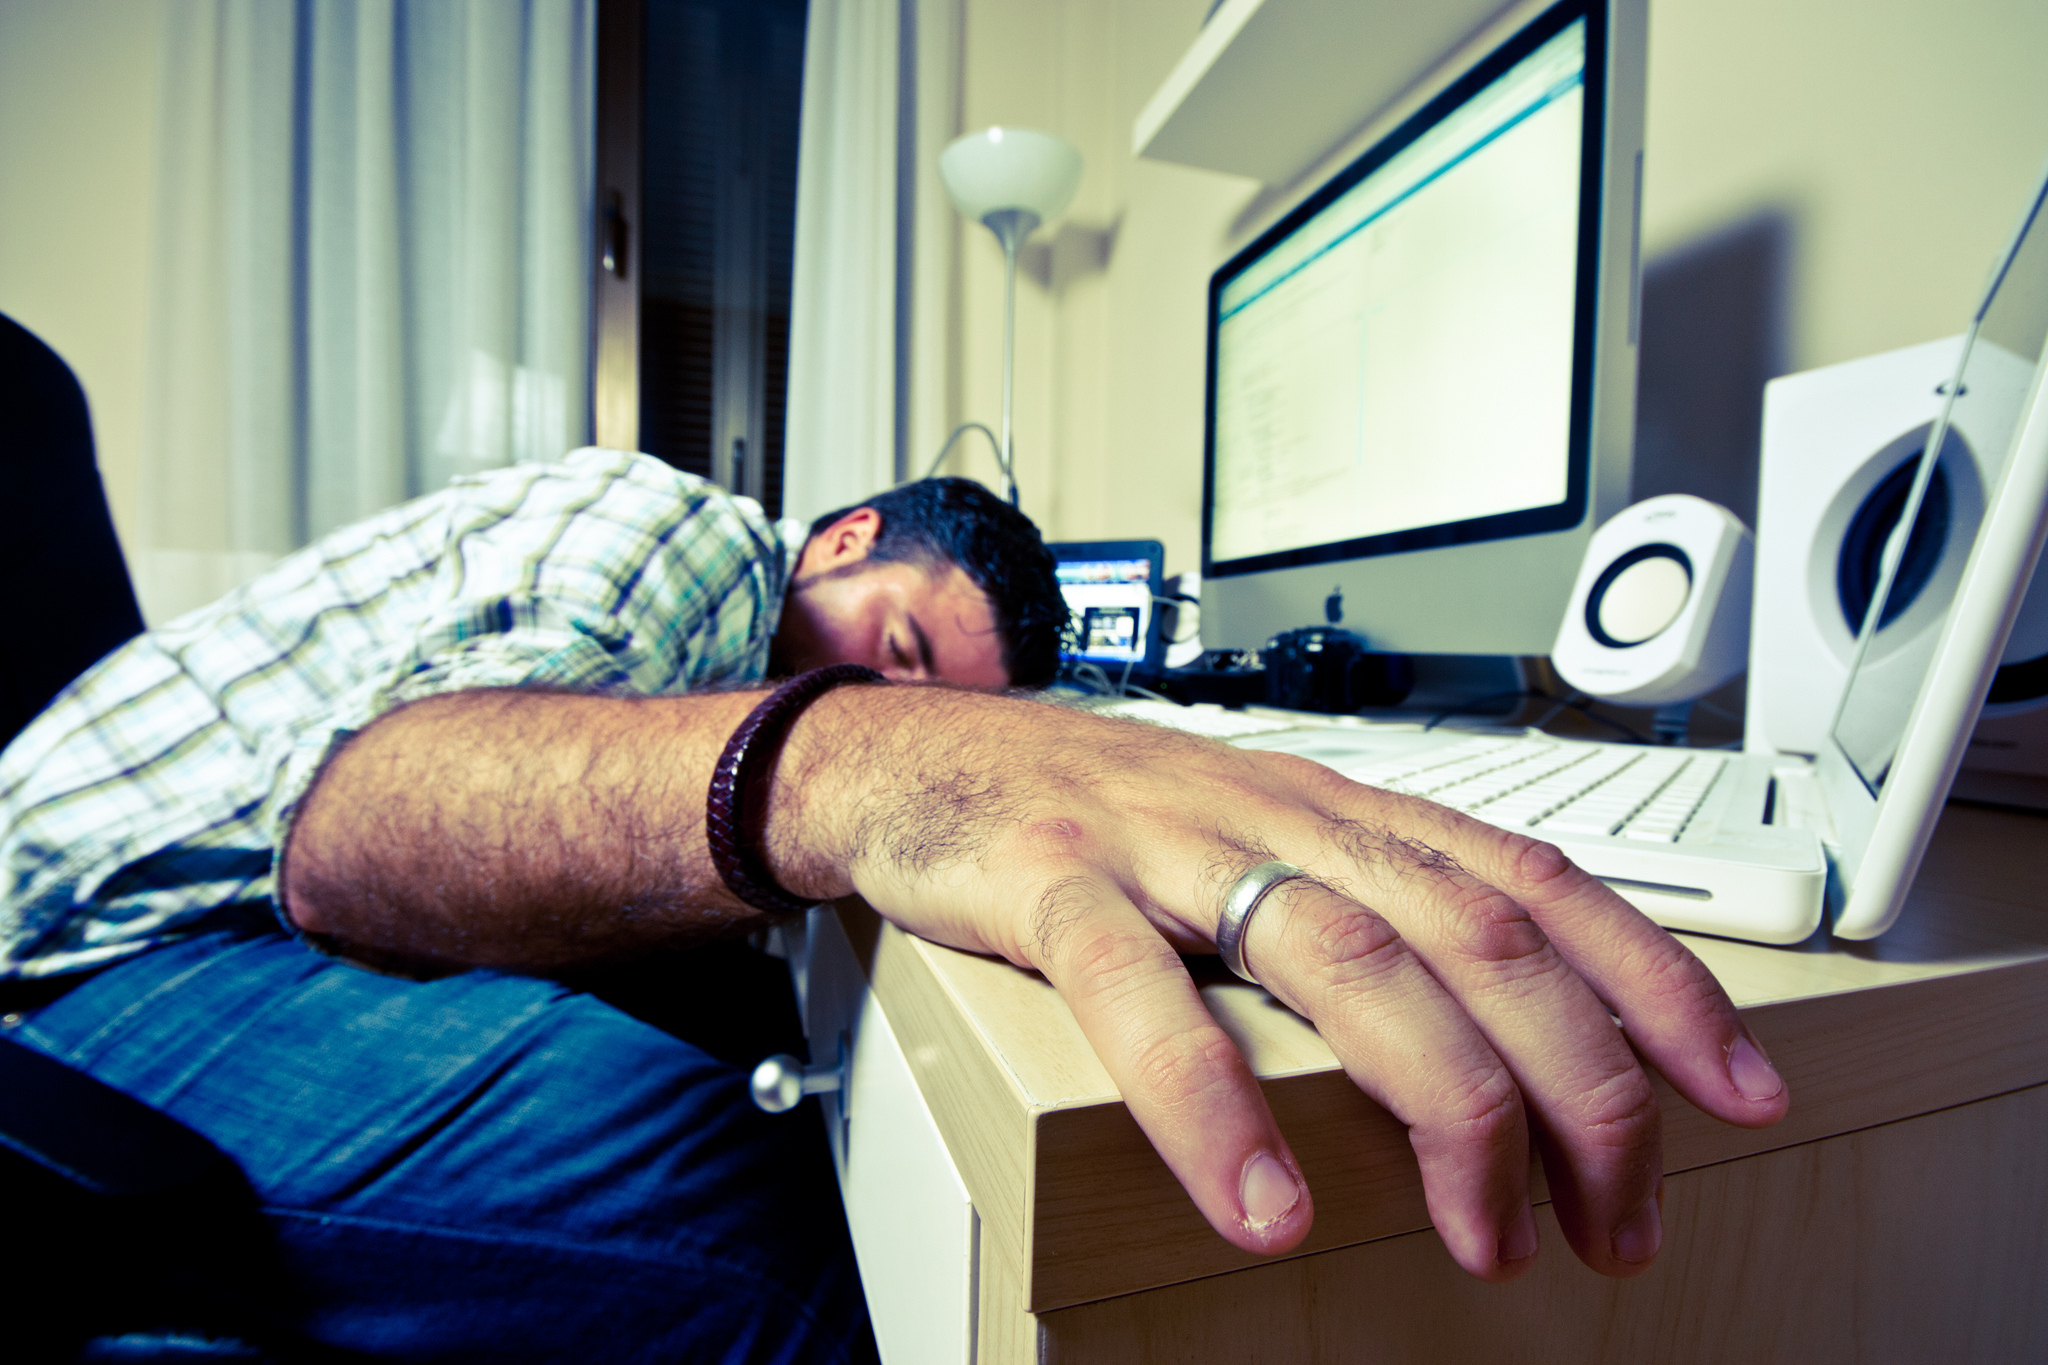 British workforce not getting enough sleep